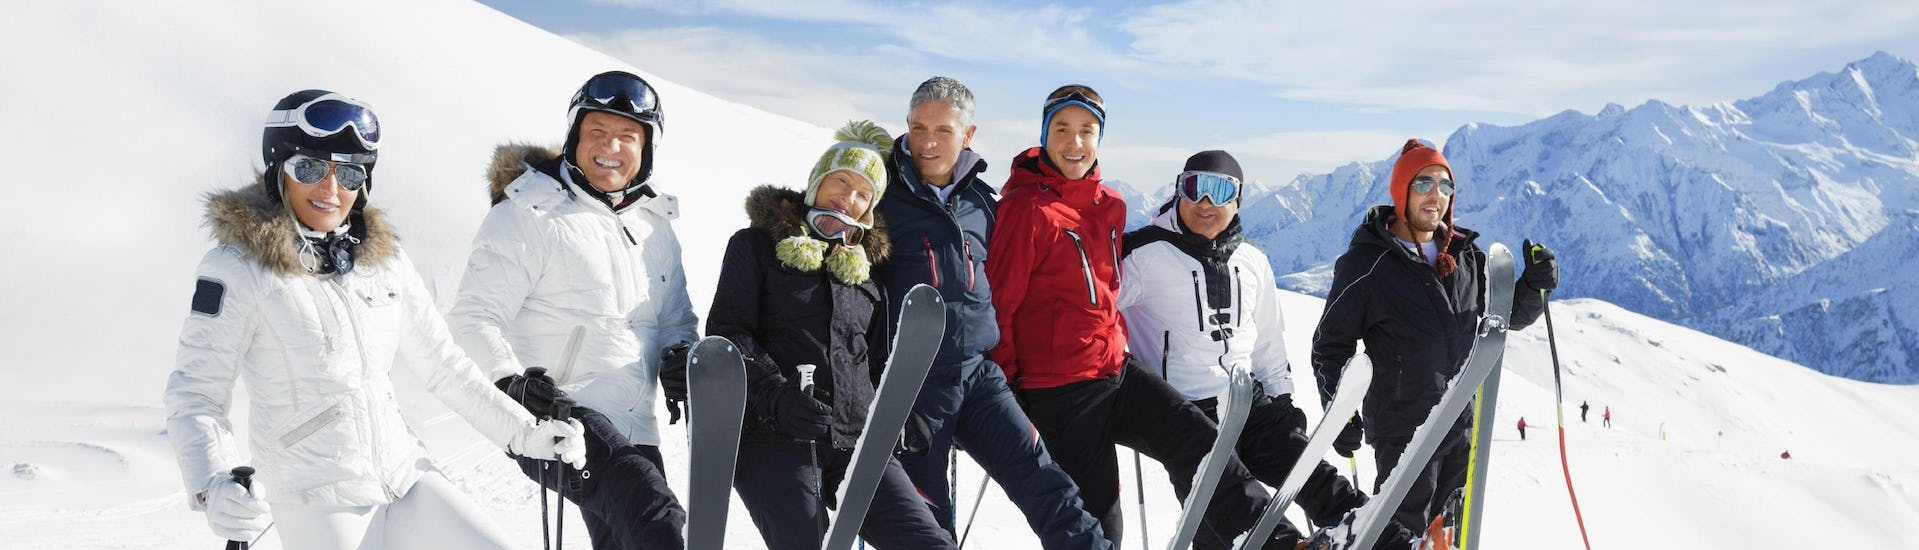 A group of skiers enjoying one of the many ski lessons for adults in the ski resort of Pelvoux.